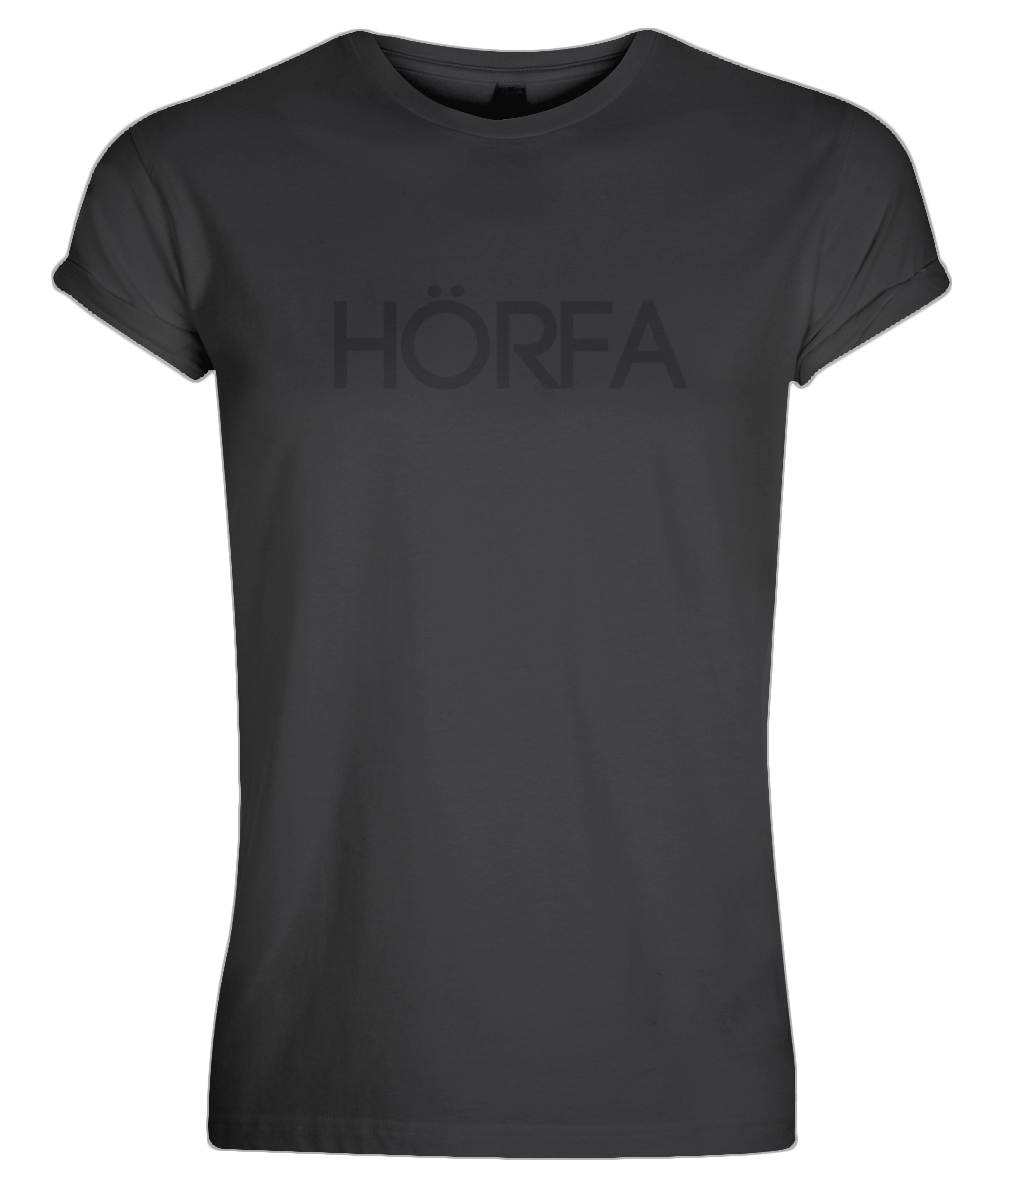 Shadow Muscle Fit T-Shirt - HÖRFA is a men's global fashion brand that provides products such as Fashionable Watches, Wallets, Sunglasses, Belts, Beard and Male Grooming Products